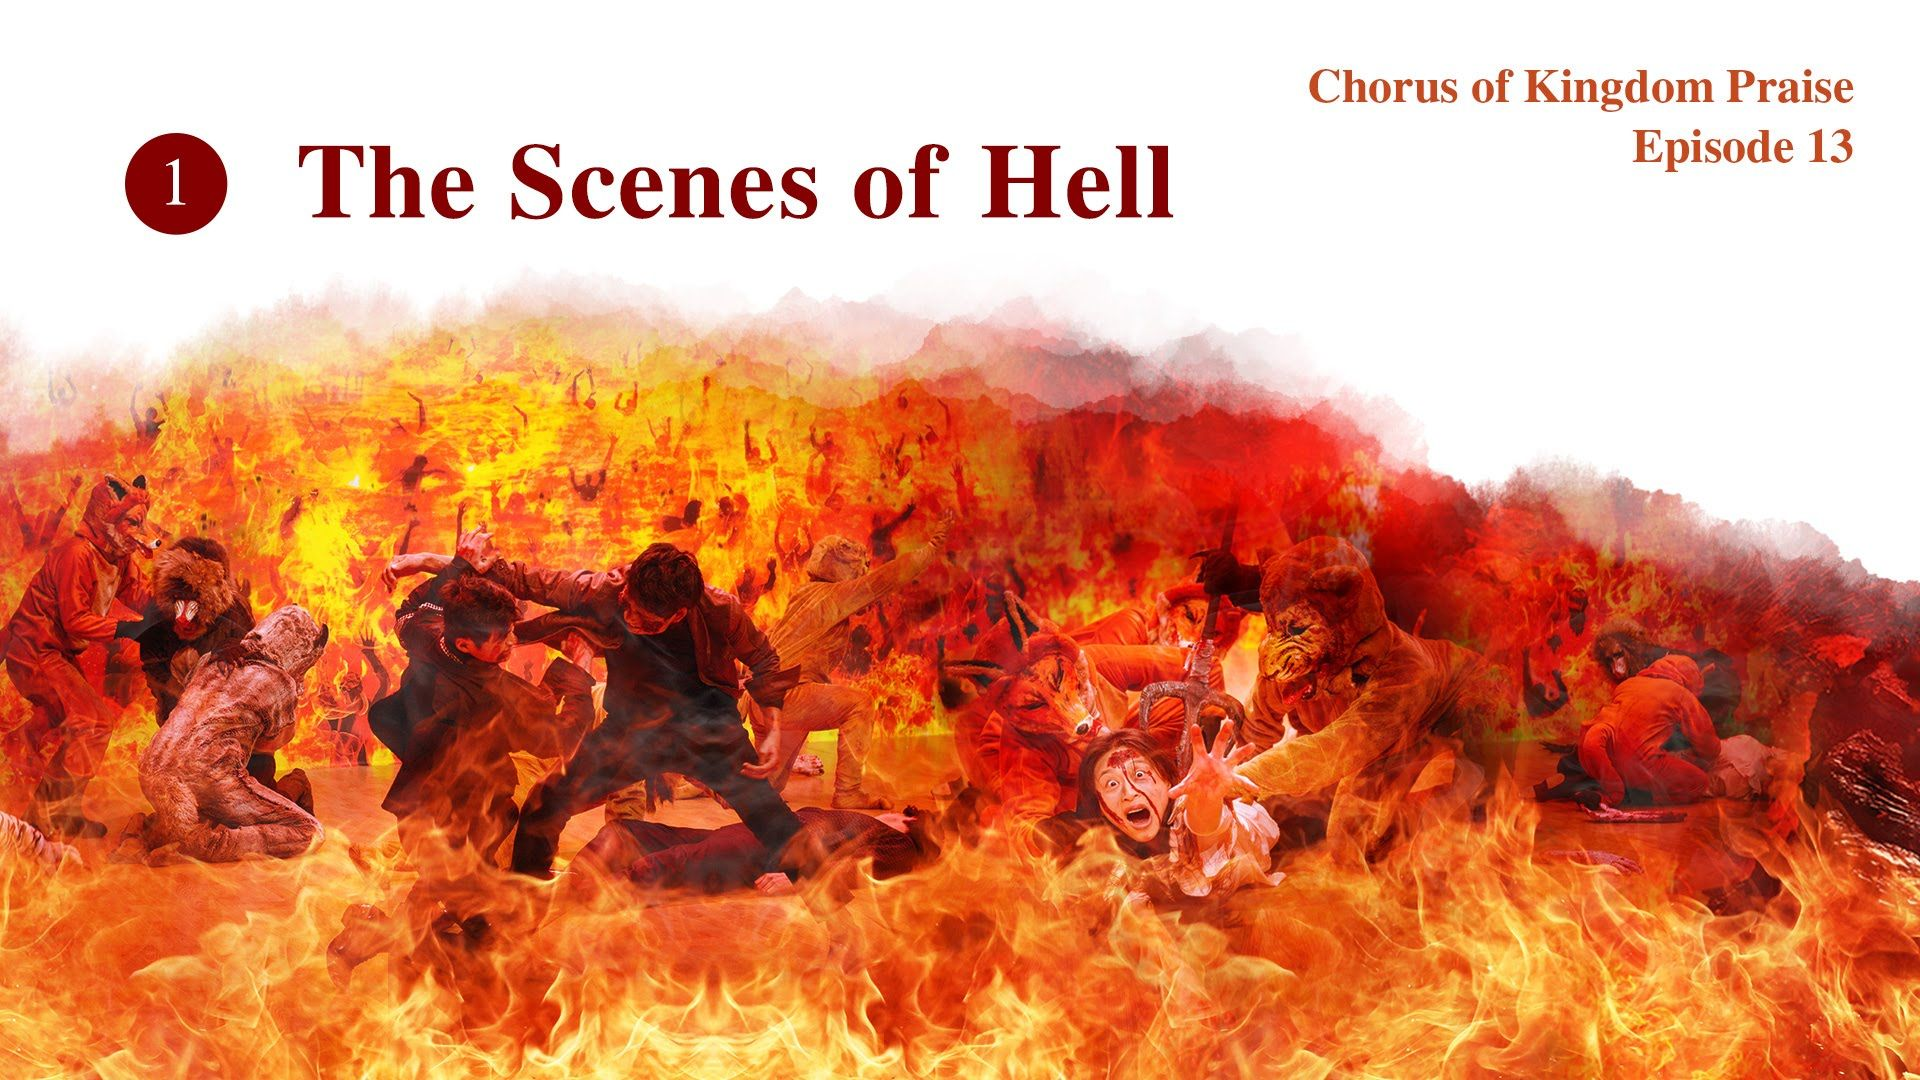 """Musical Show """"Chinese Gospel Choir Episode 13"""" (1): The Scenes of Hell"""